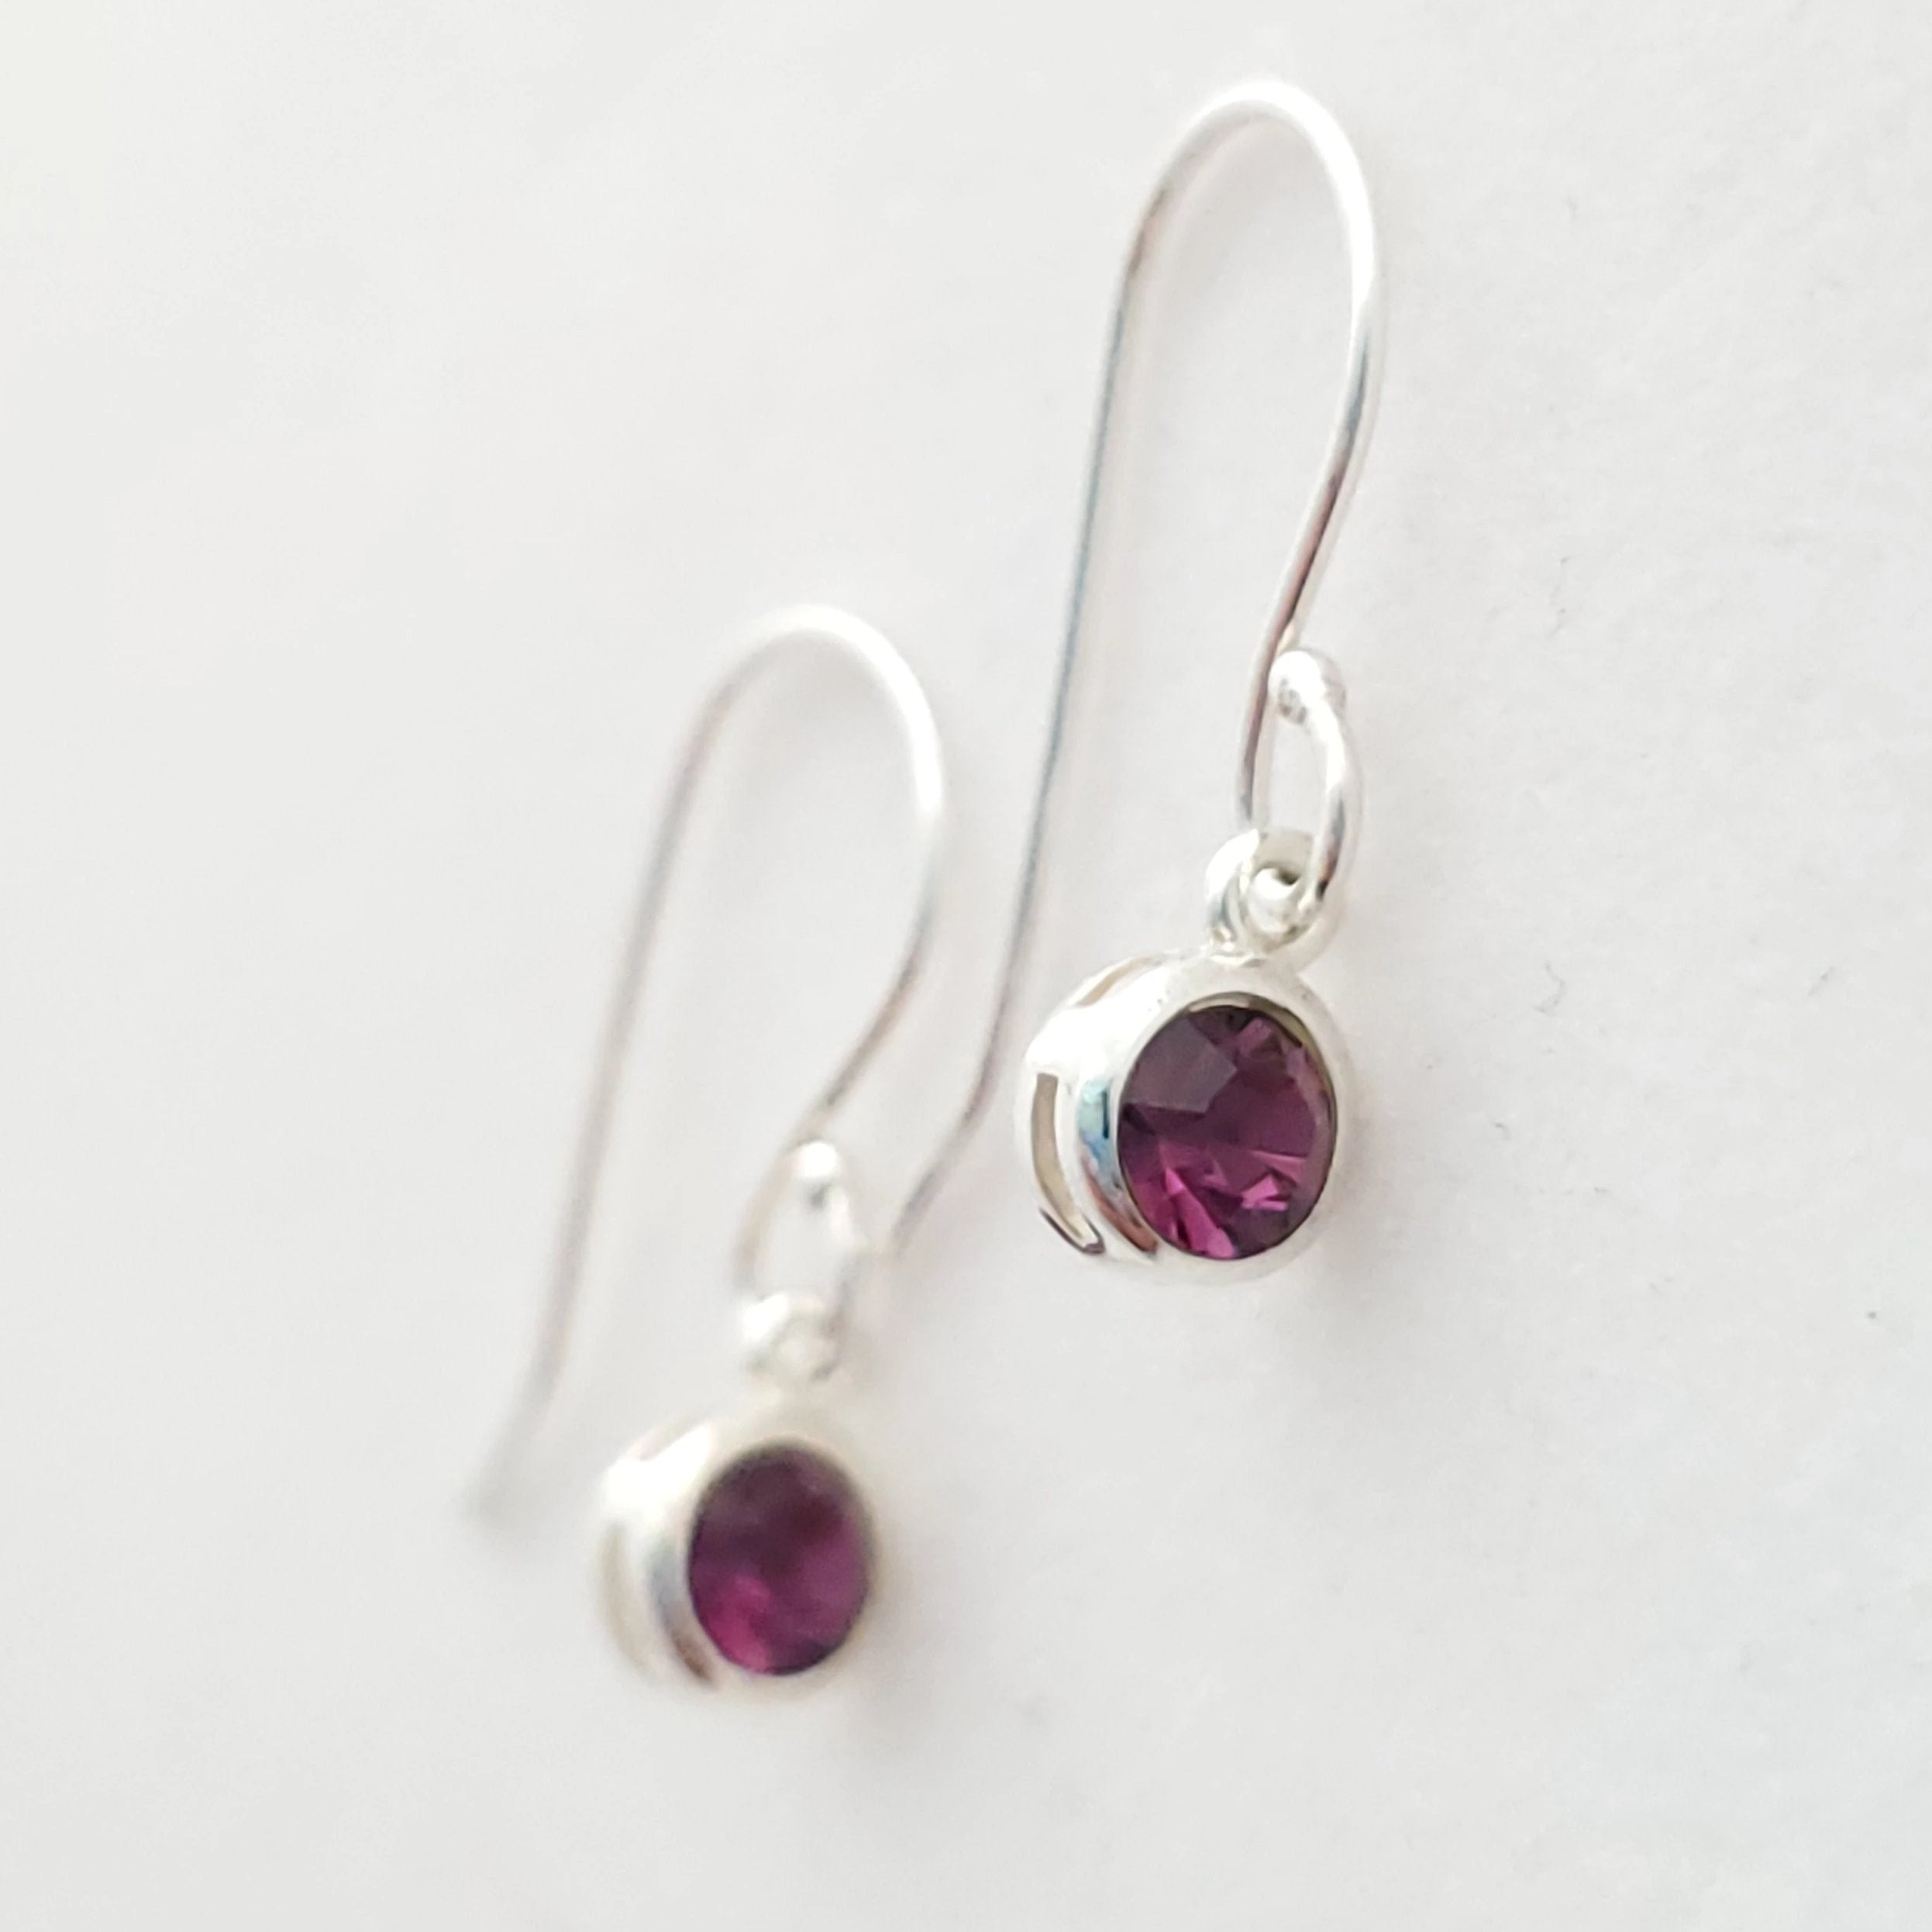 February purple crystal dangle earrings in sterling silver. Laying down side view.